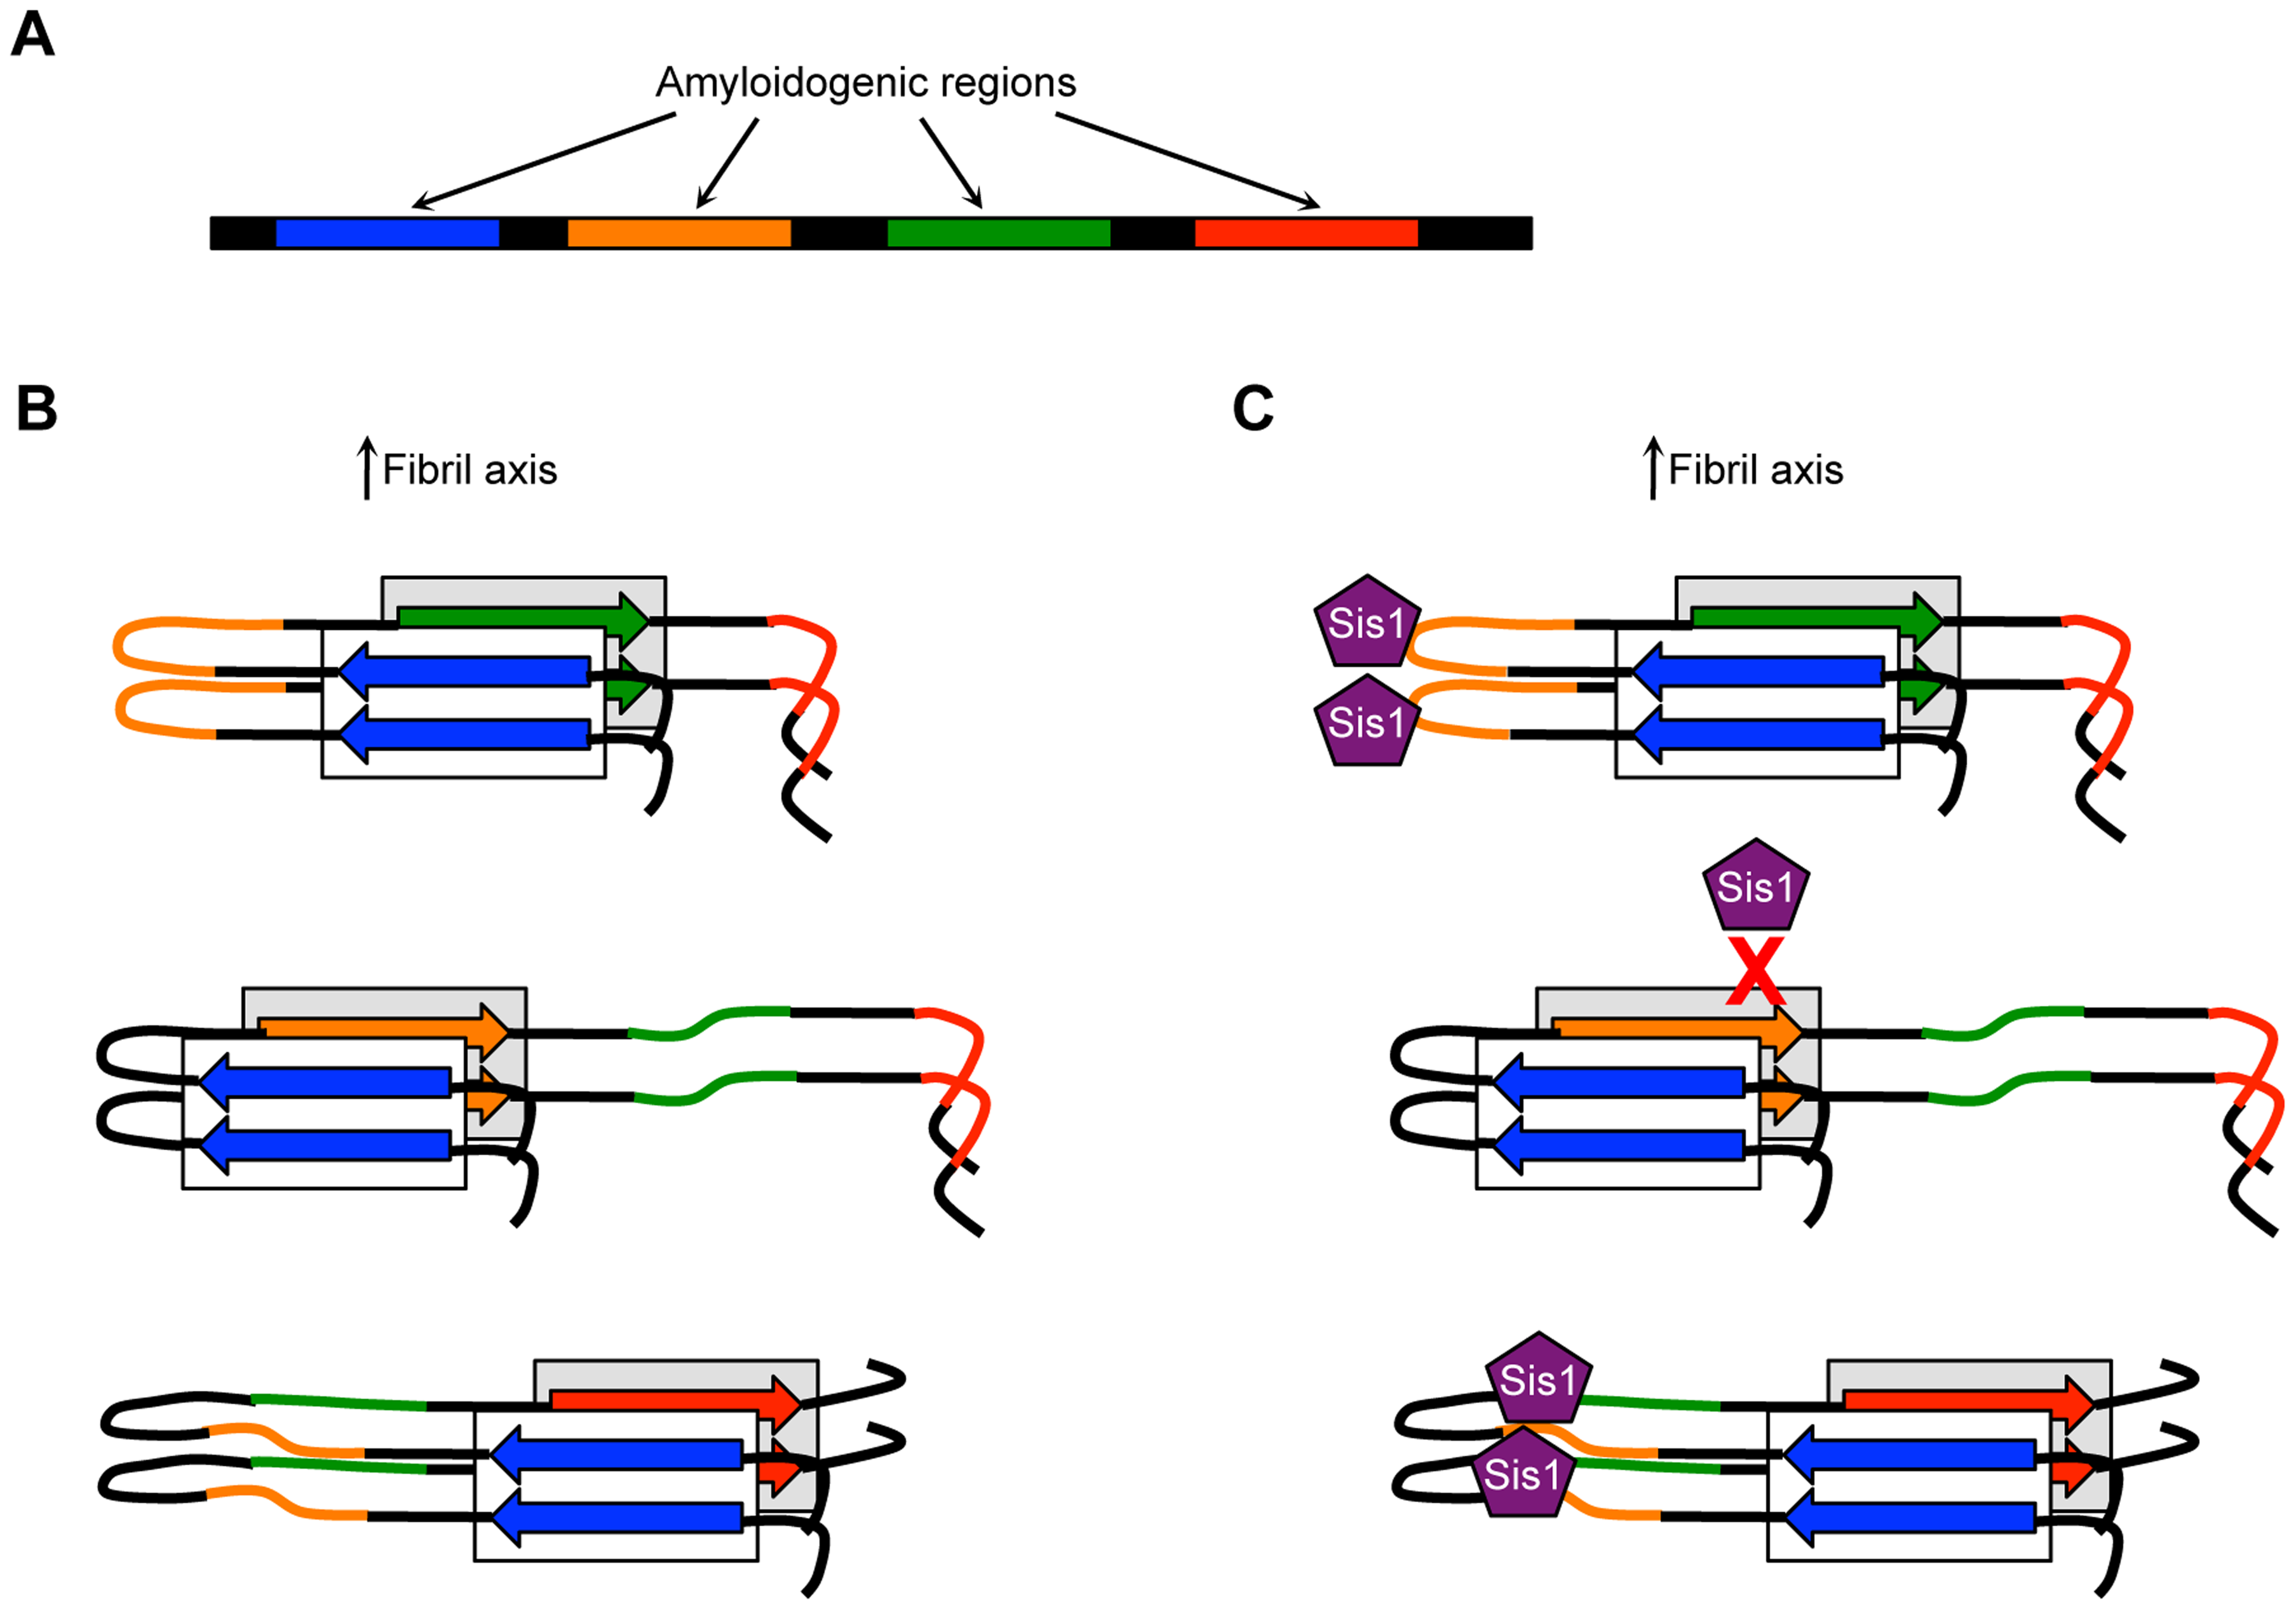 Model showing how distinct amyloidogenic regions could influence amyloid polymorphism and associated phenotypic variation.